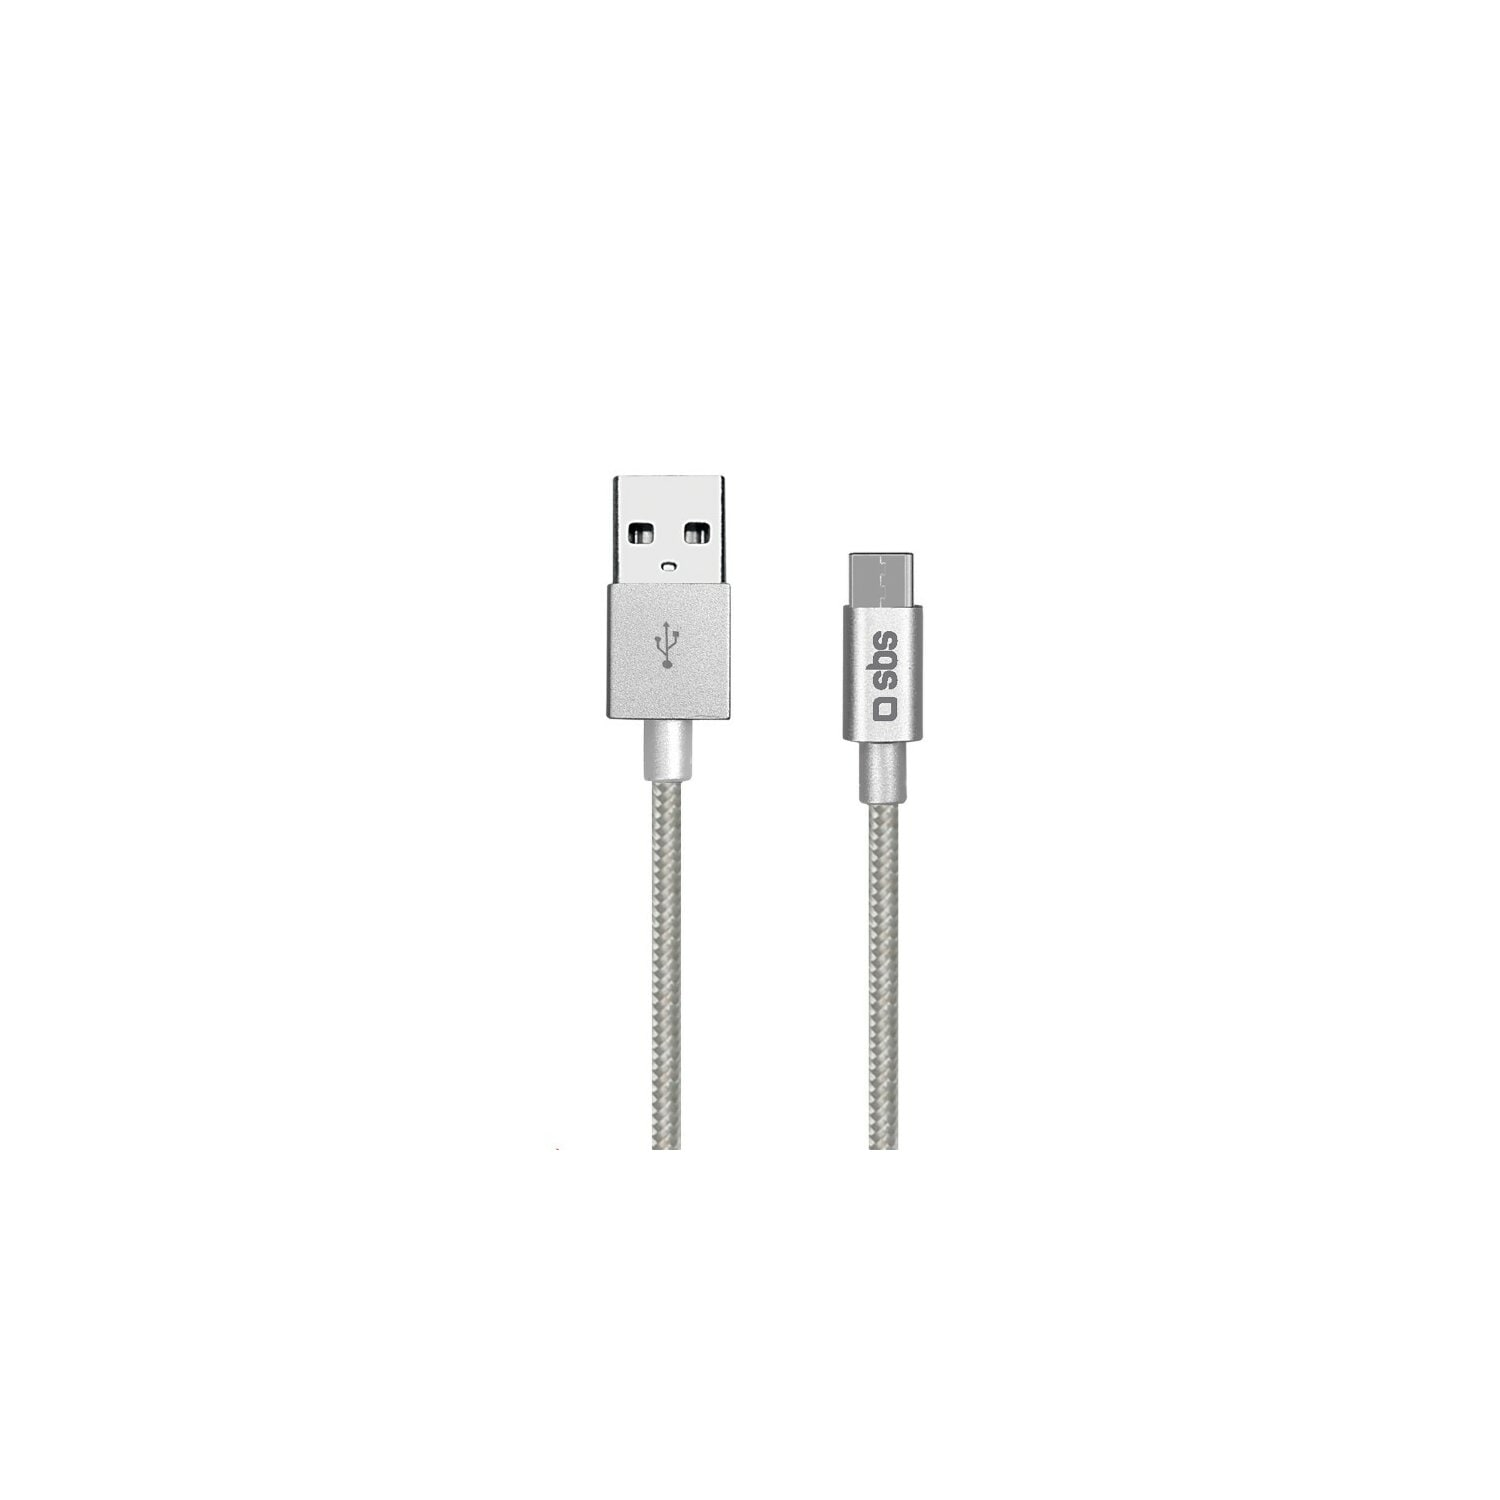 Kabel SBS USB Type C 1.5m Srebrny